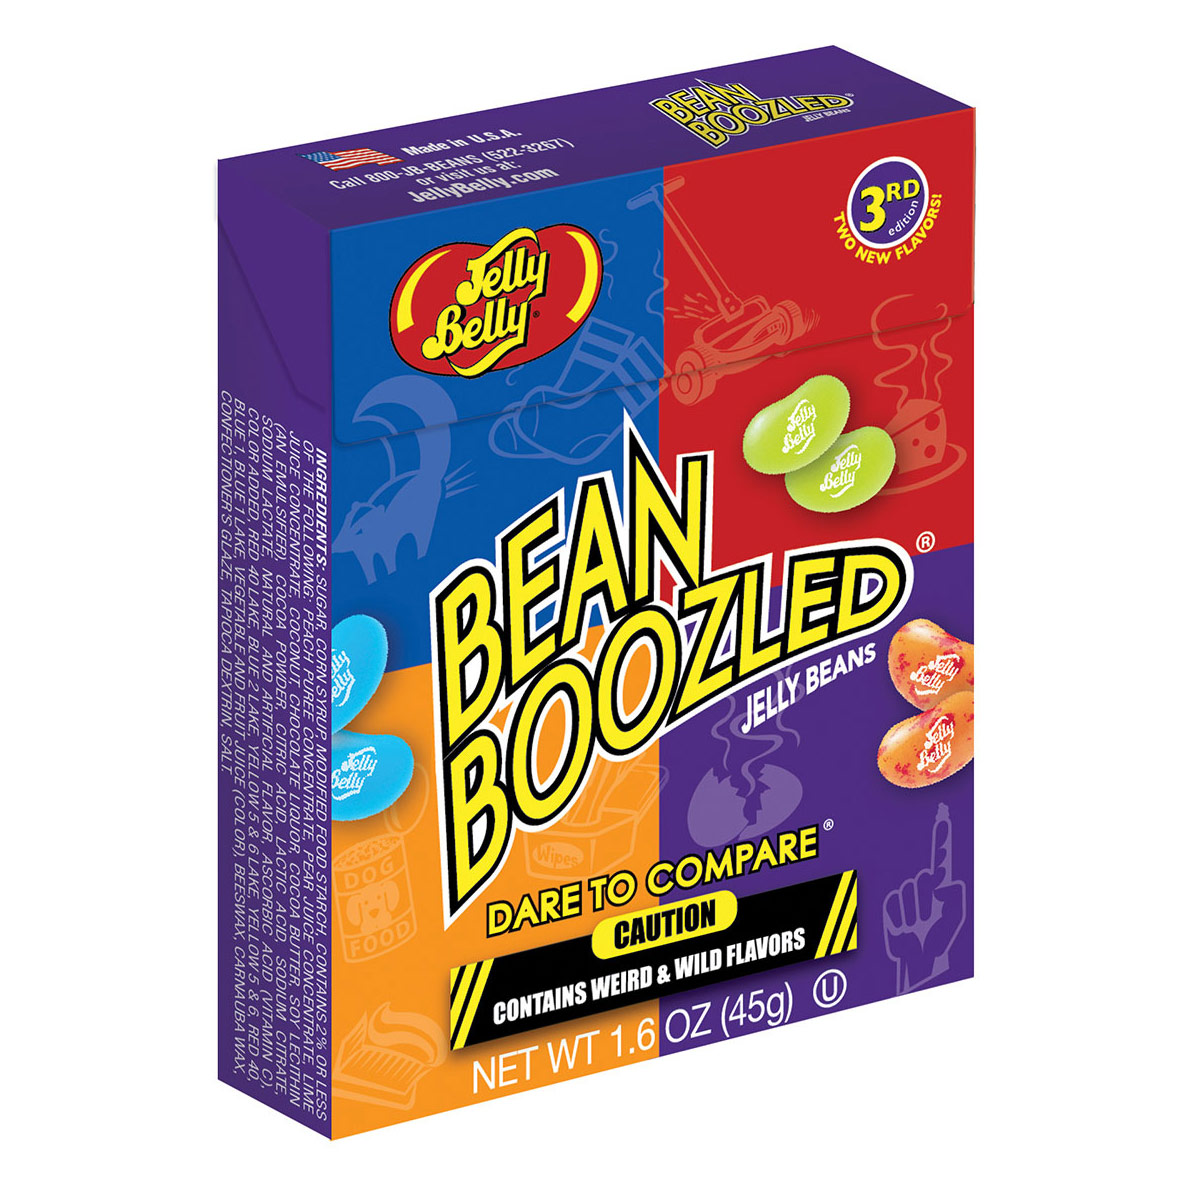 Source: Jelly Belly